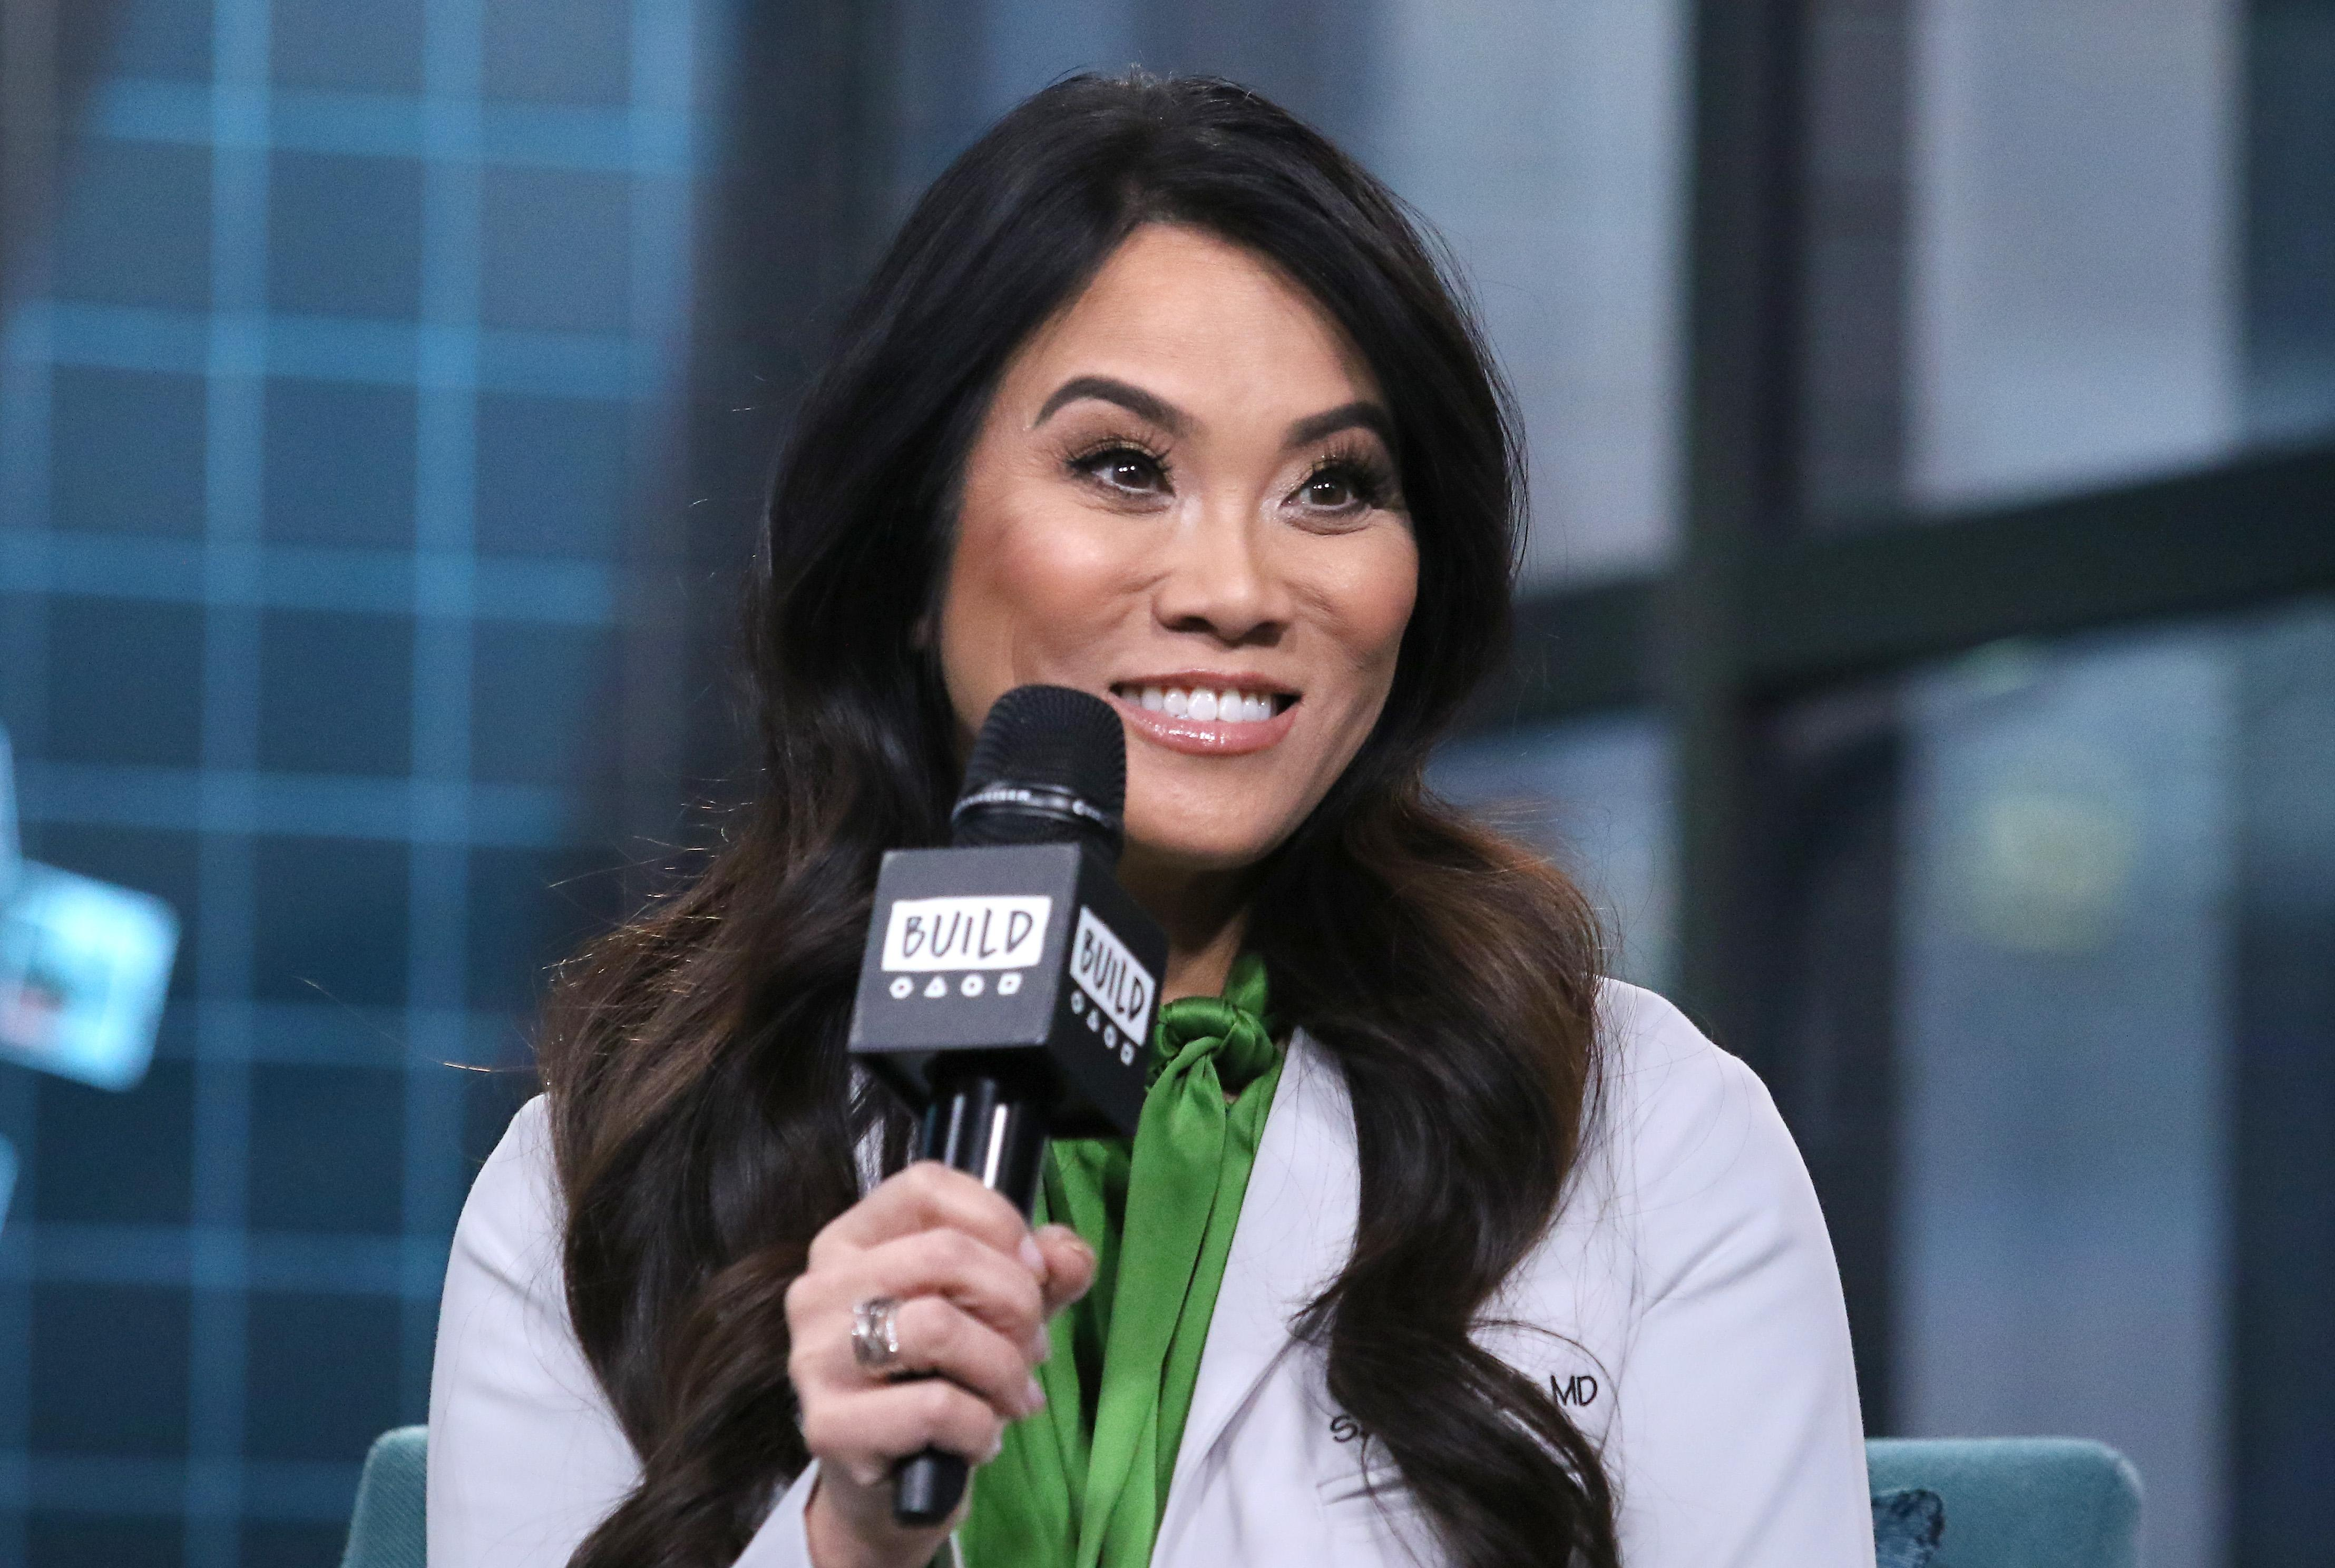 Dr Pimple Popper Says Selena Gomez Kept Her From Getting